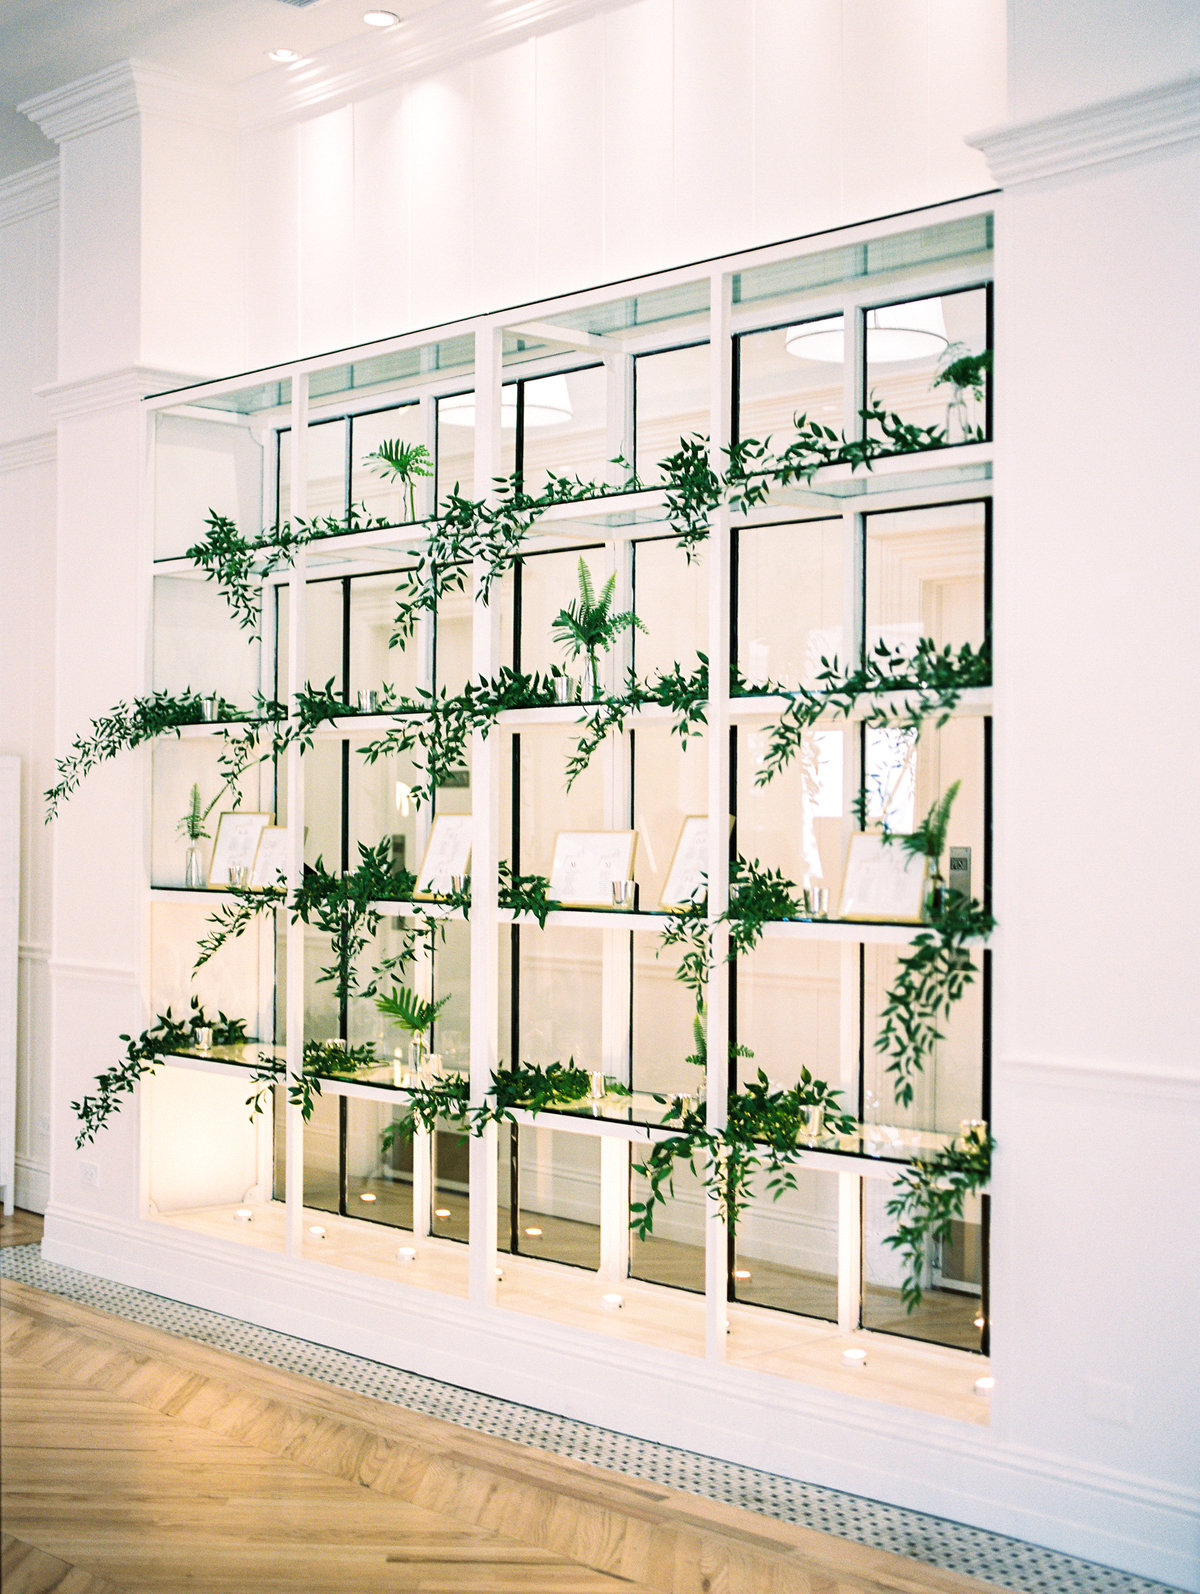 Chicago Illuminating Company Wedding with Greenery_6